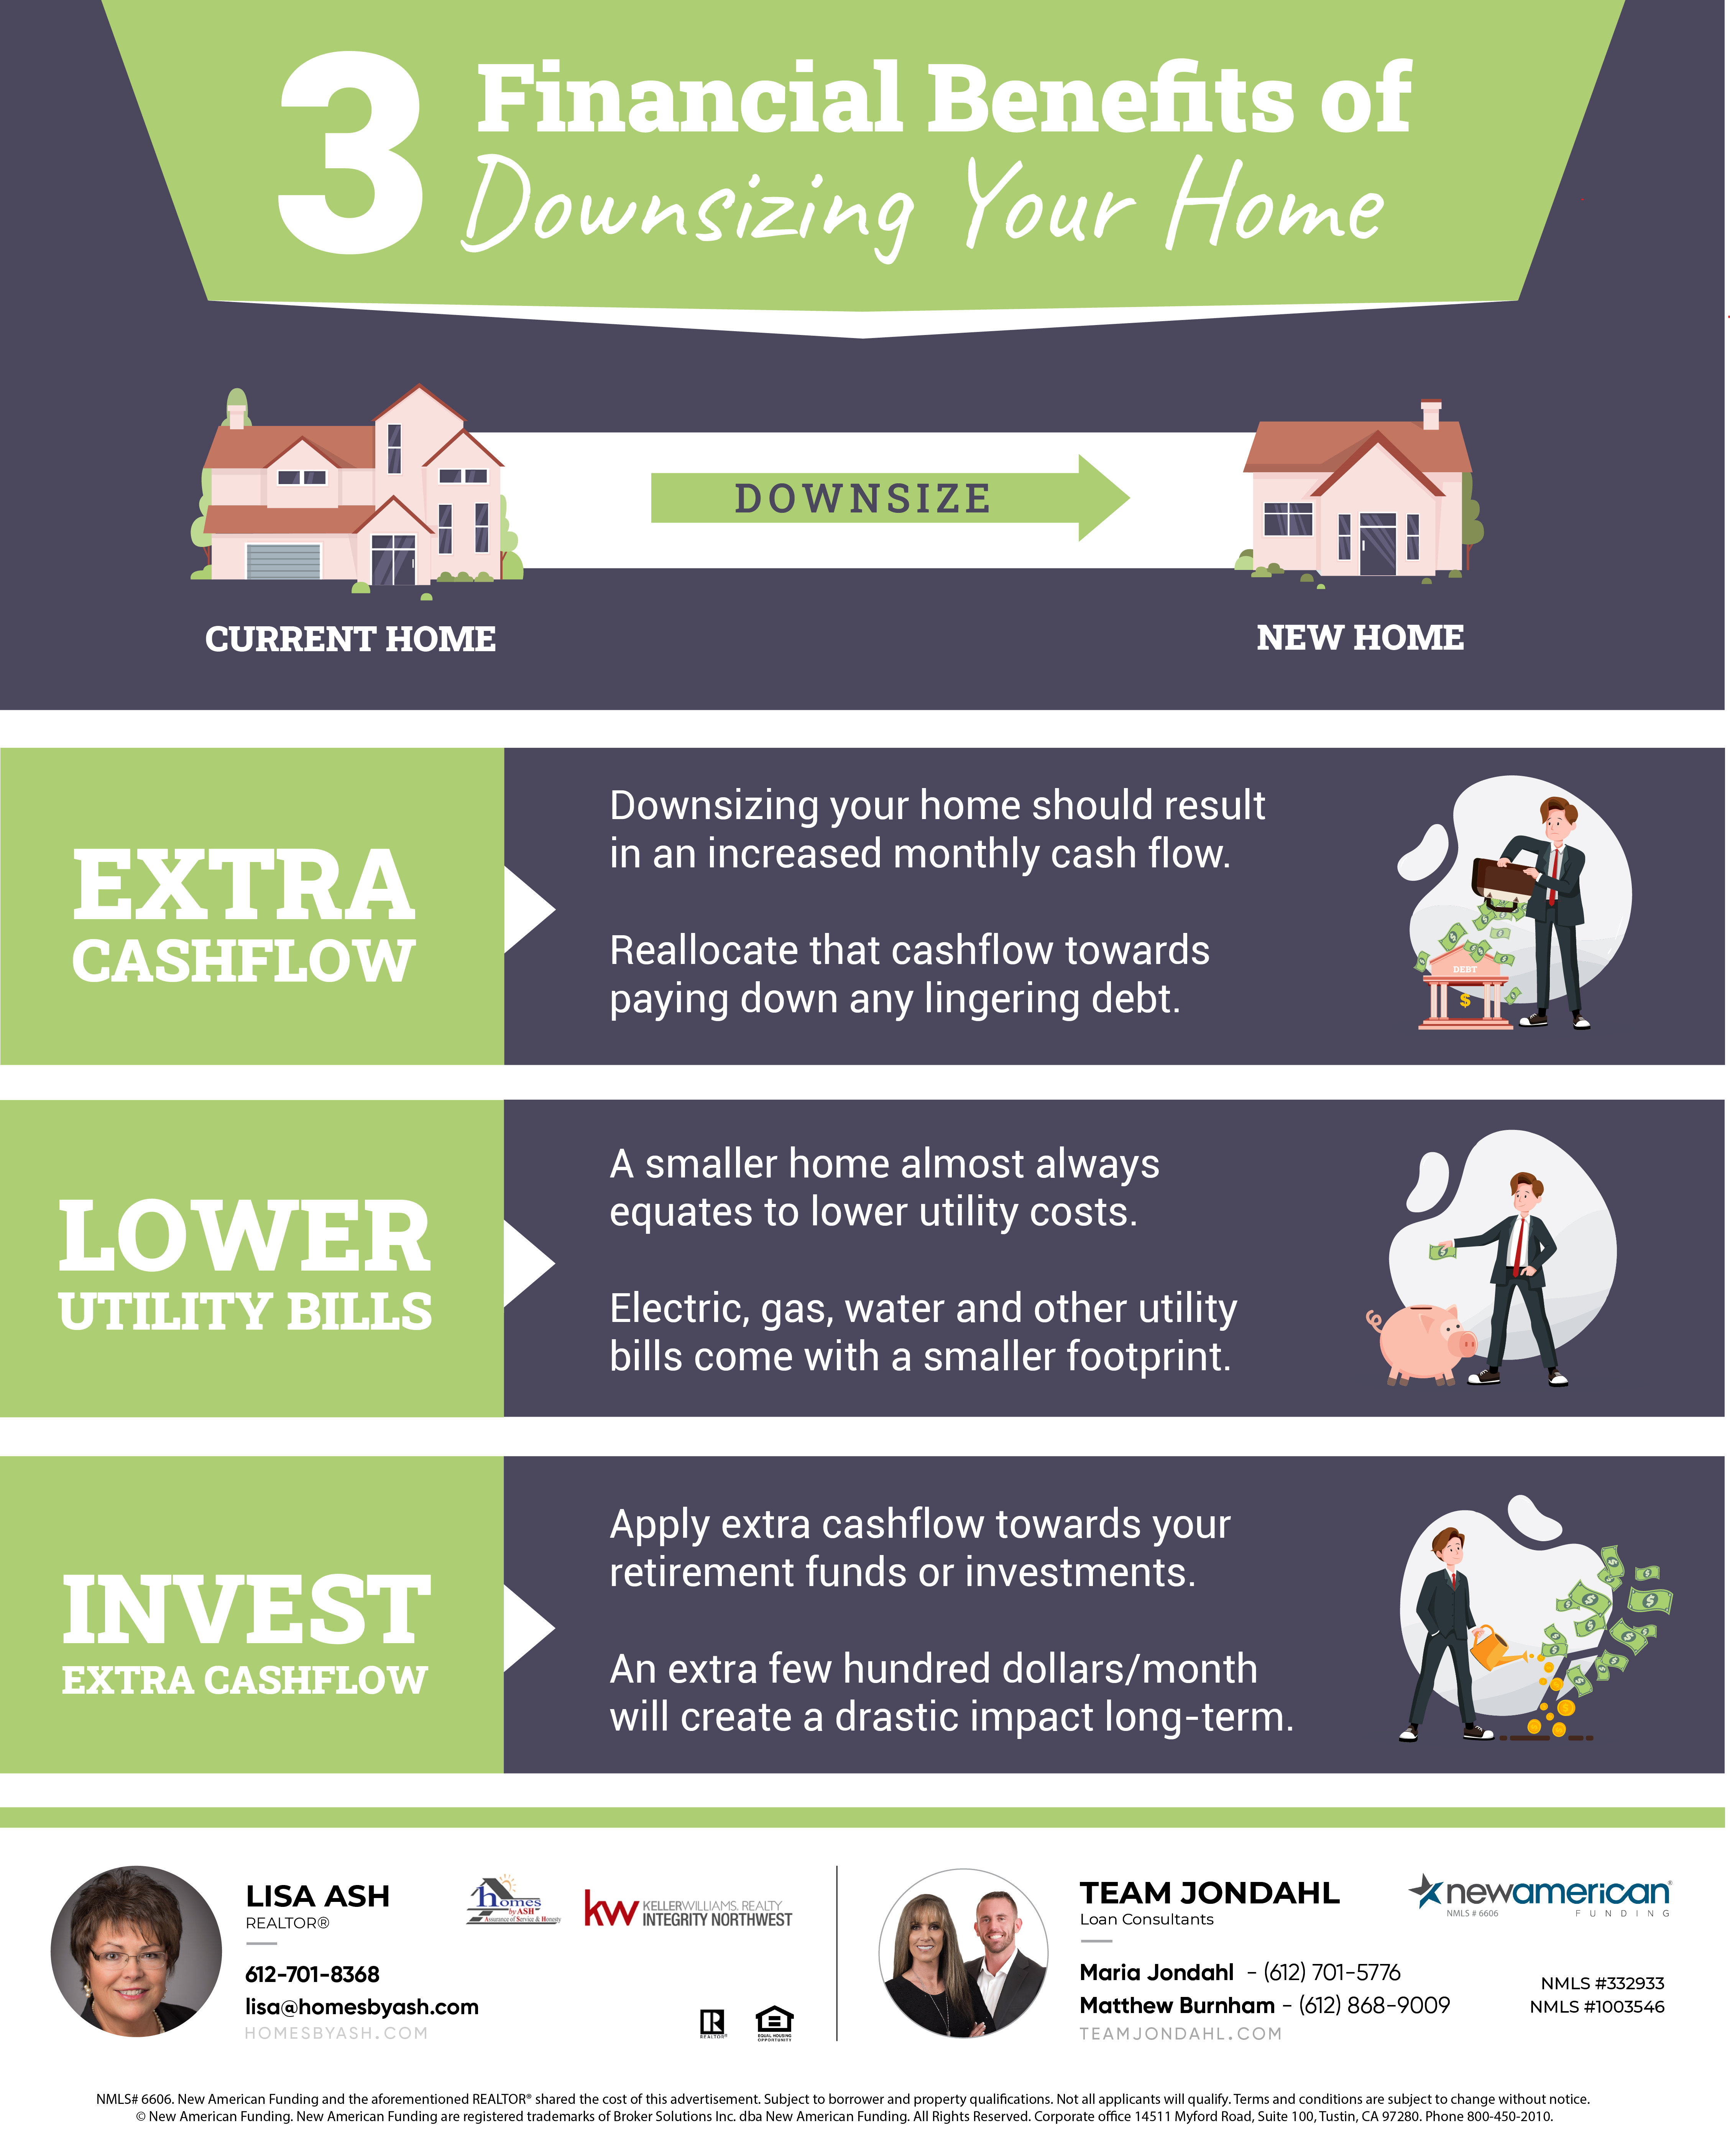 Top Three Financial Benefits to Downsizing a Home